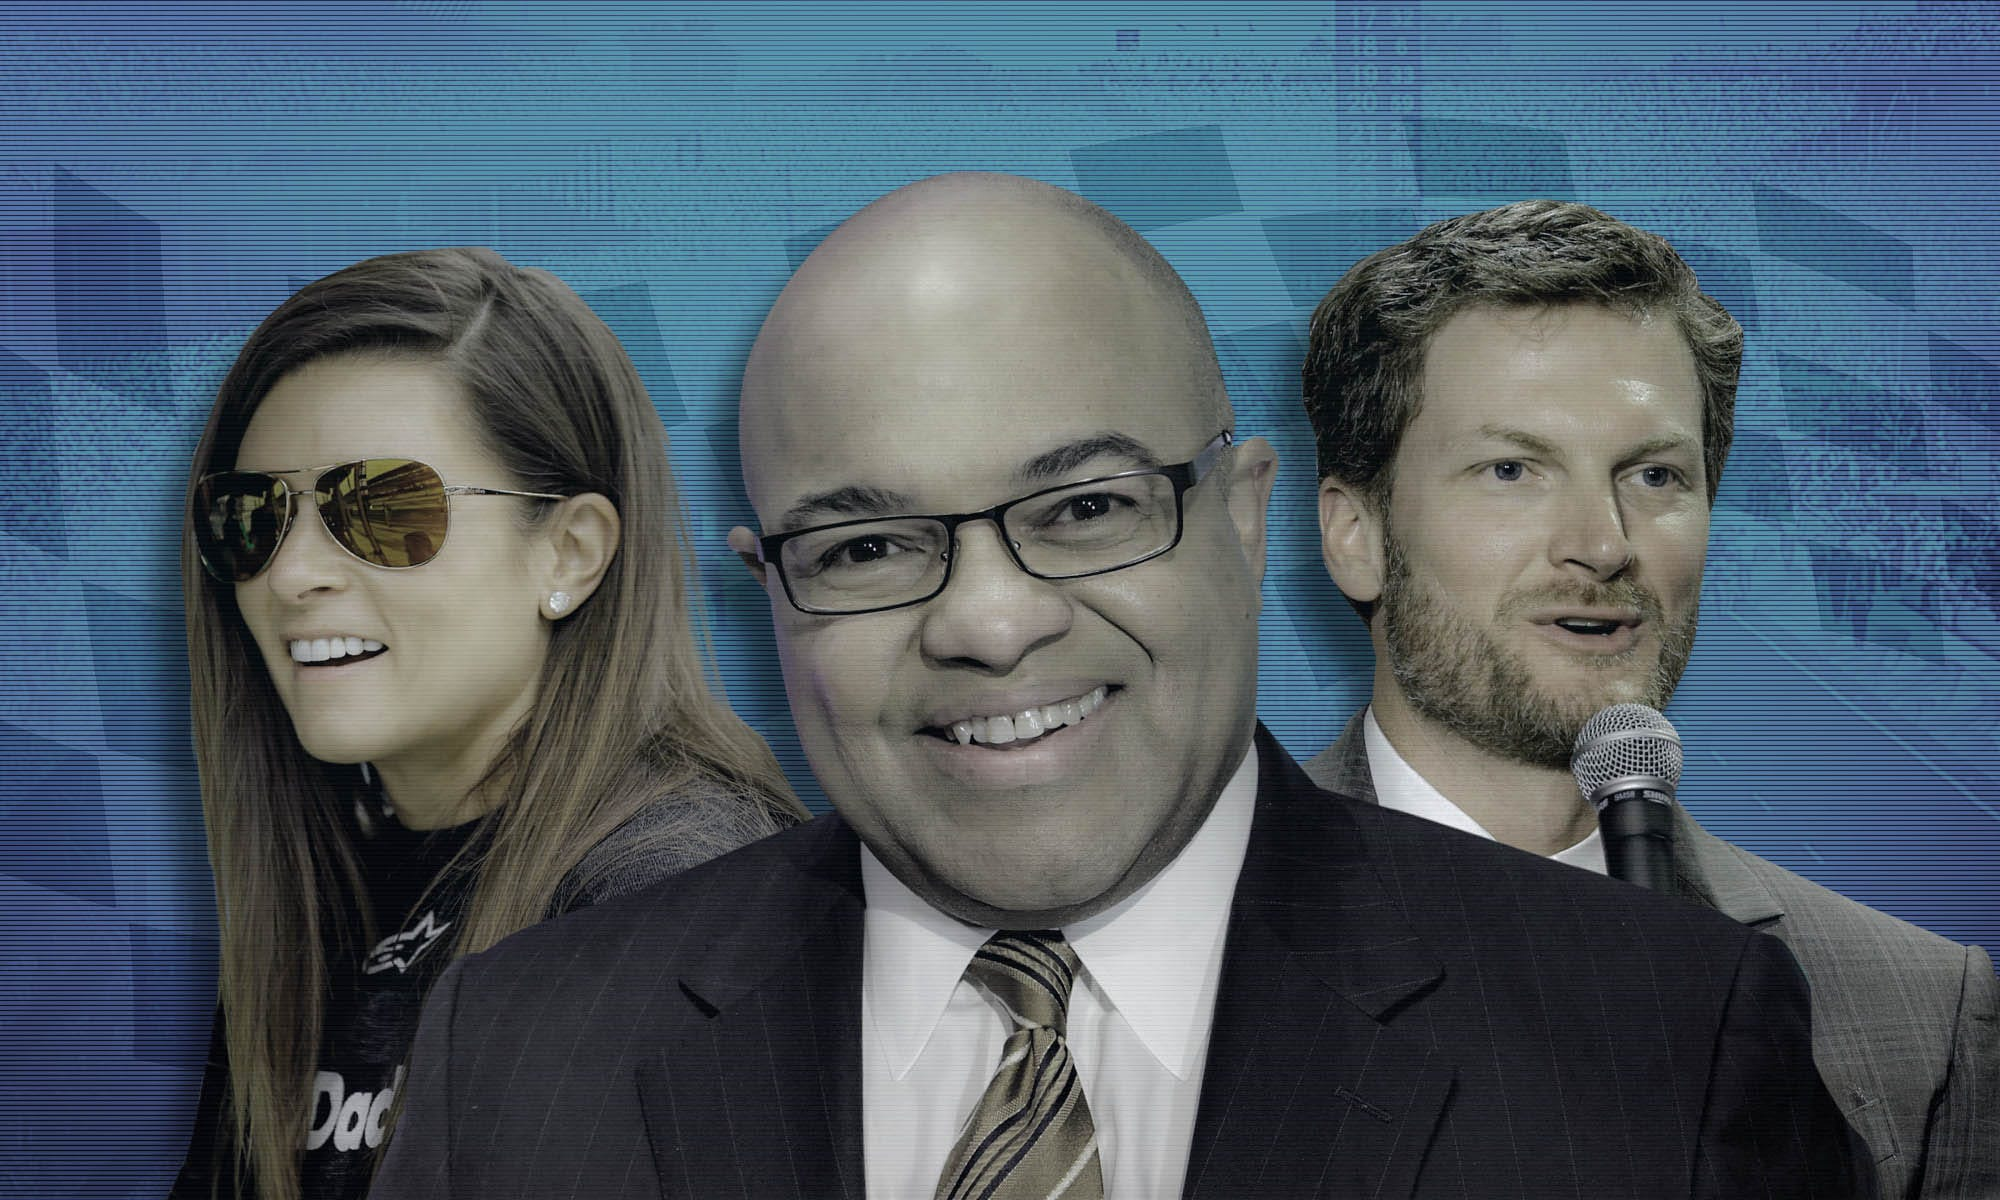 Danica, Dale Jr., Mike Tirico bring 'fresh perspective' to NBC's first Indy 500